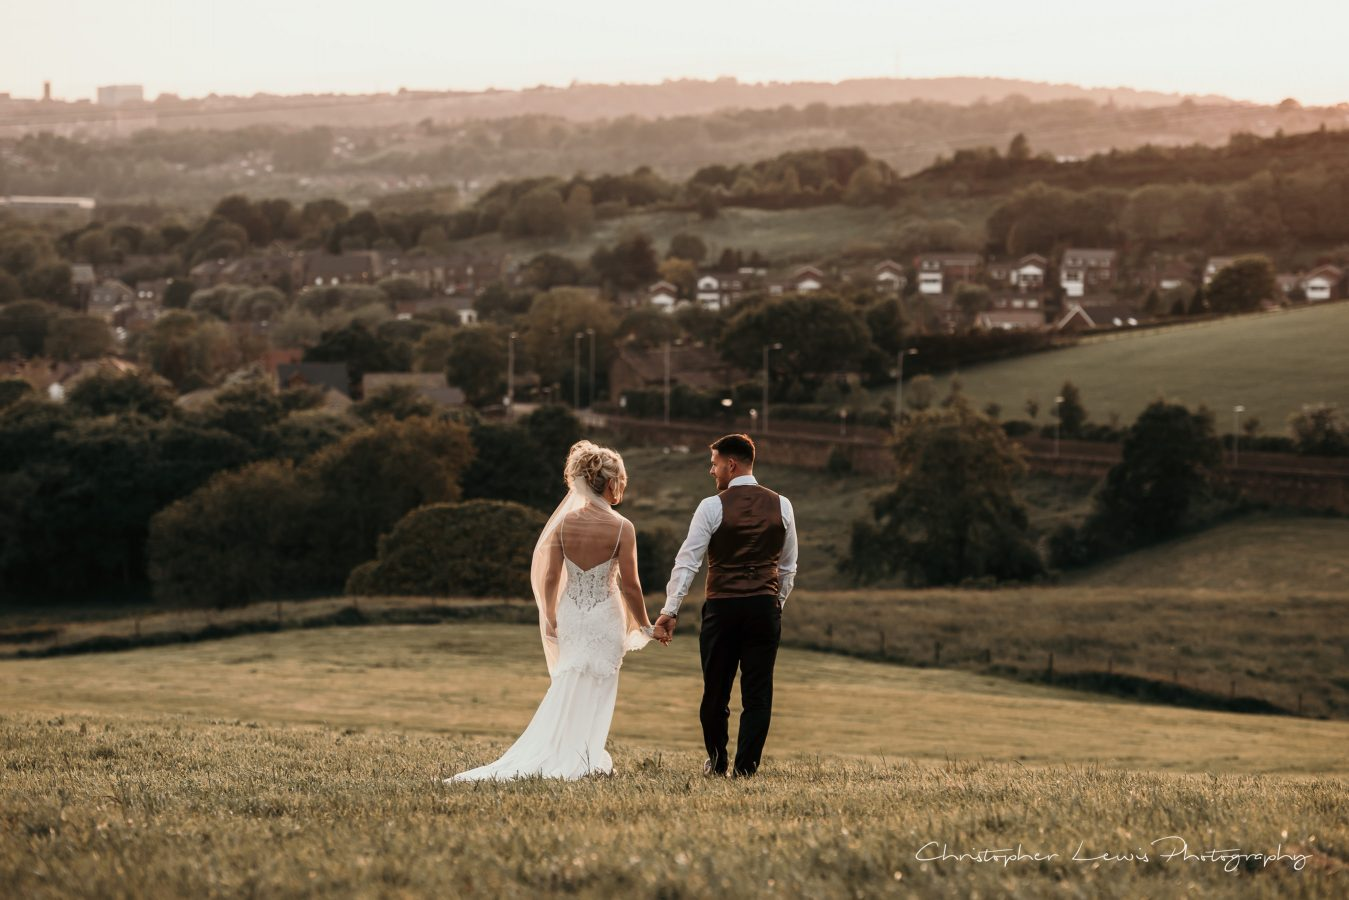 White-Hart-Lydgate-Wedding-Christopher-Lewis-Photography-229